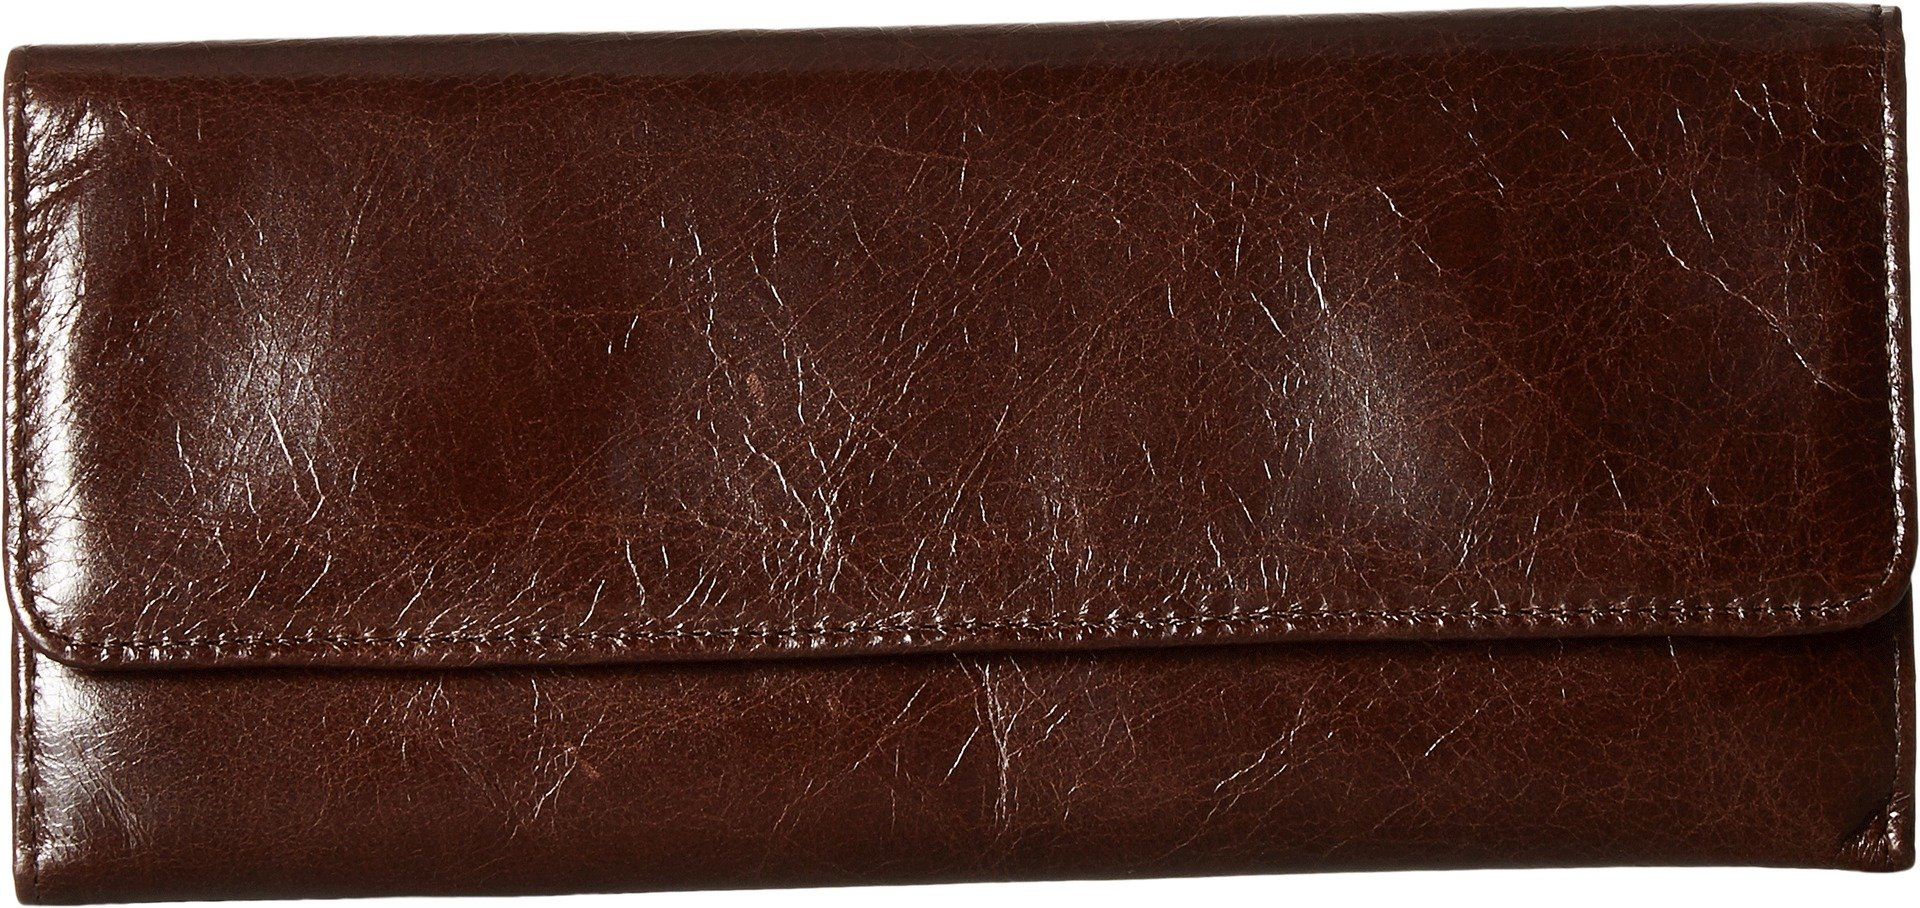 Hobo Womens Leather Sadie Continental Clutch Wallet (Espresso)